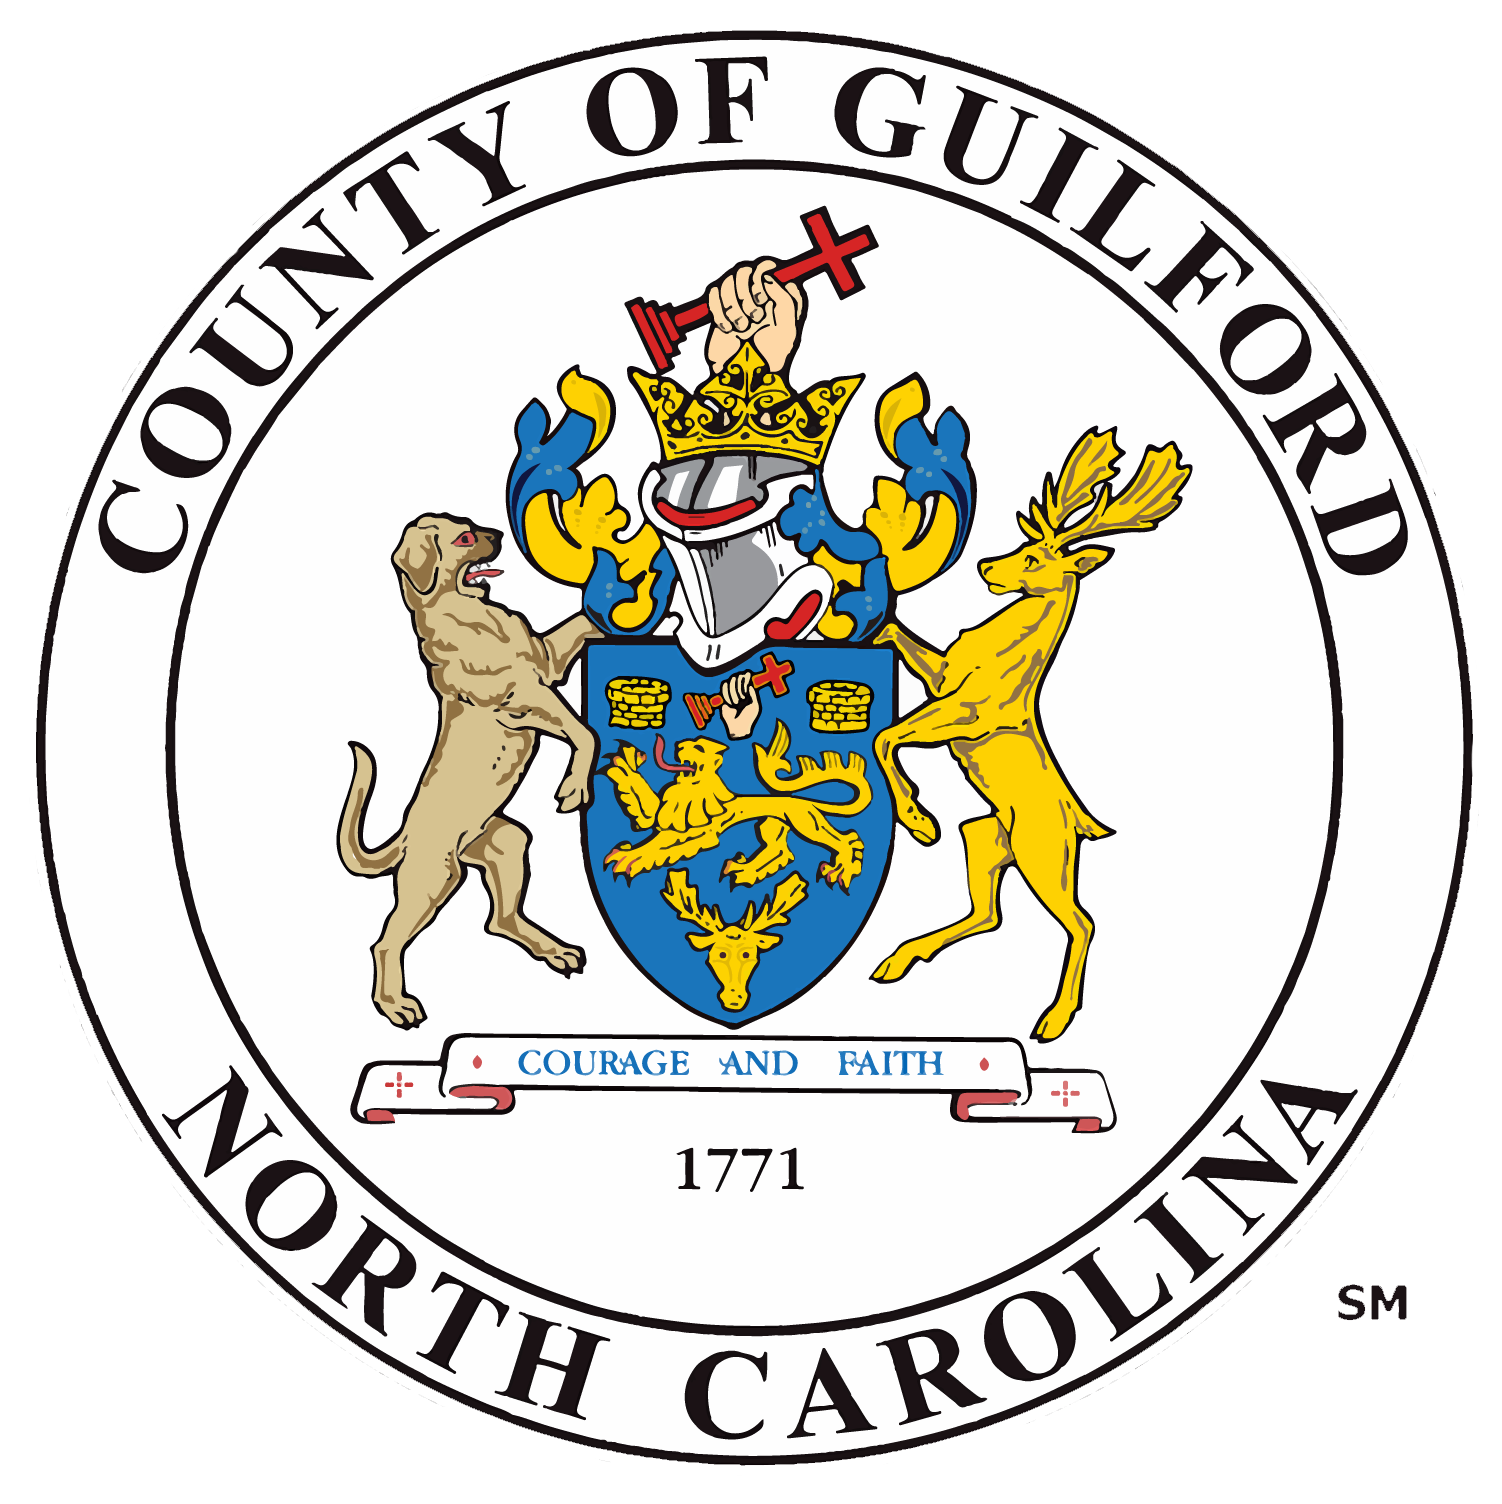 County of Guilford North Carolina.